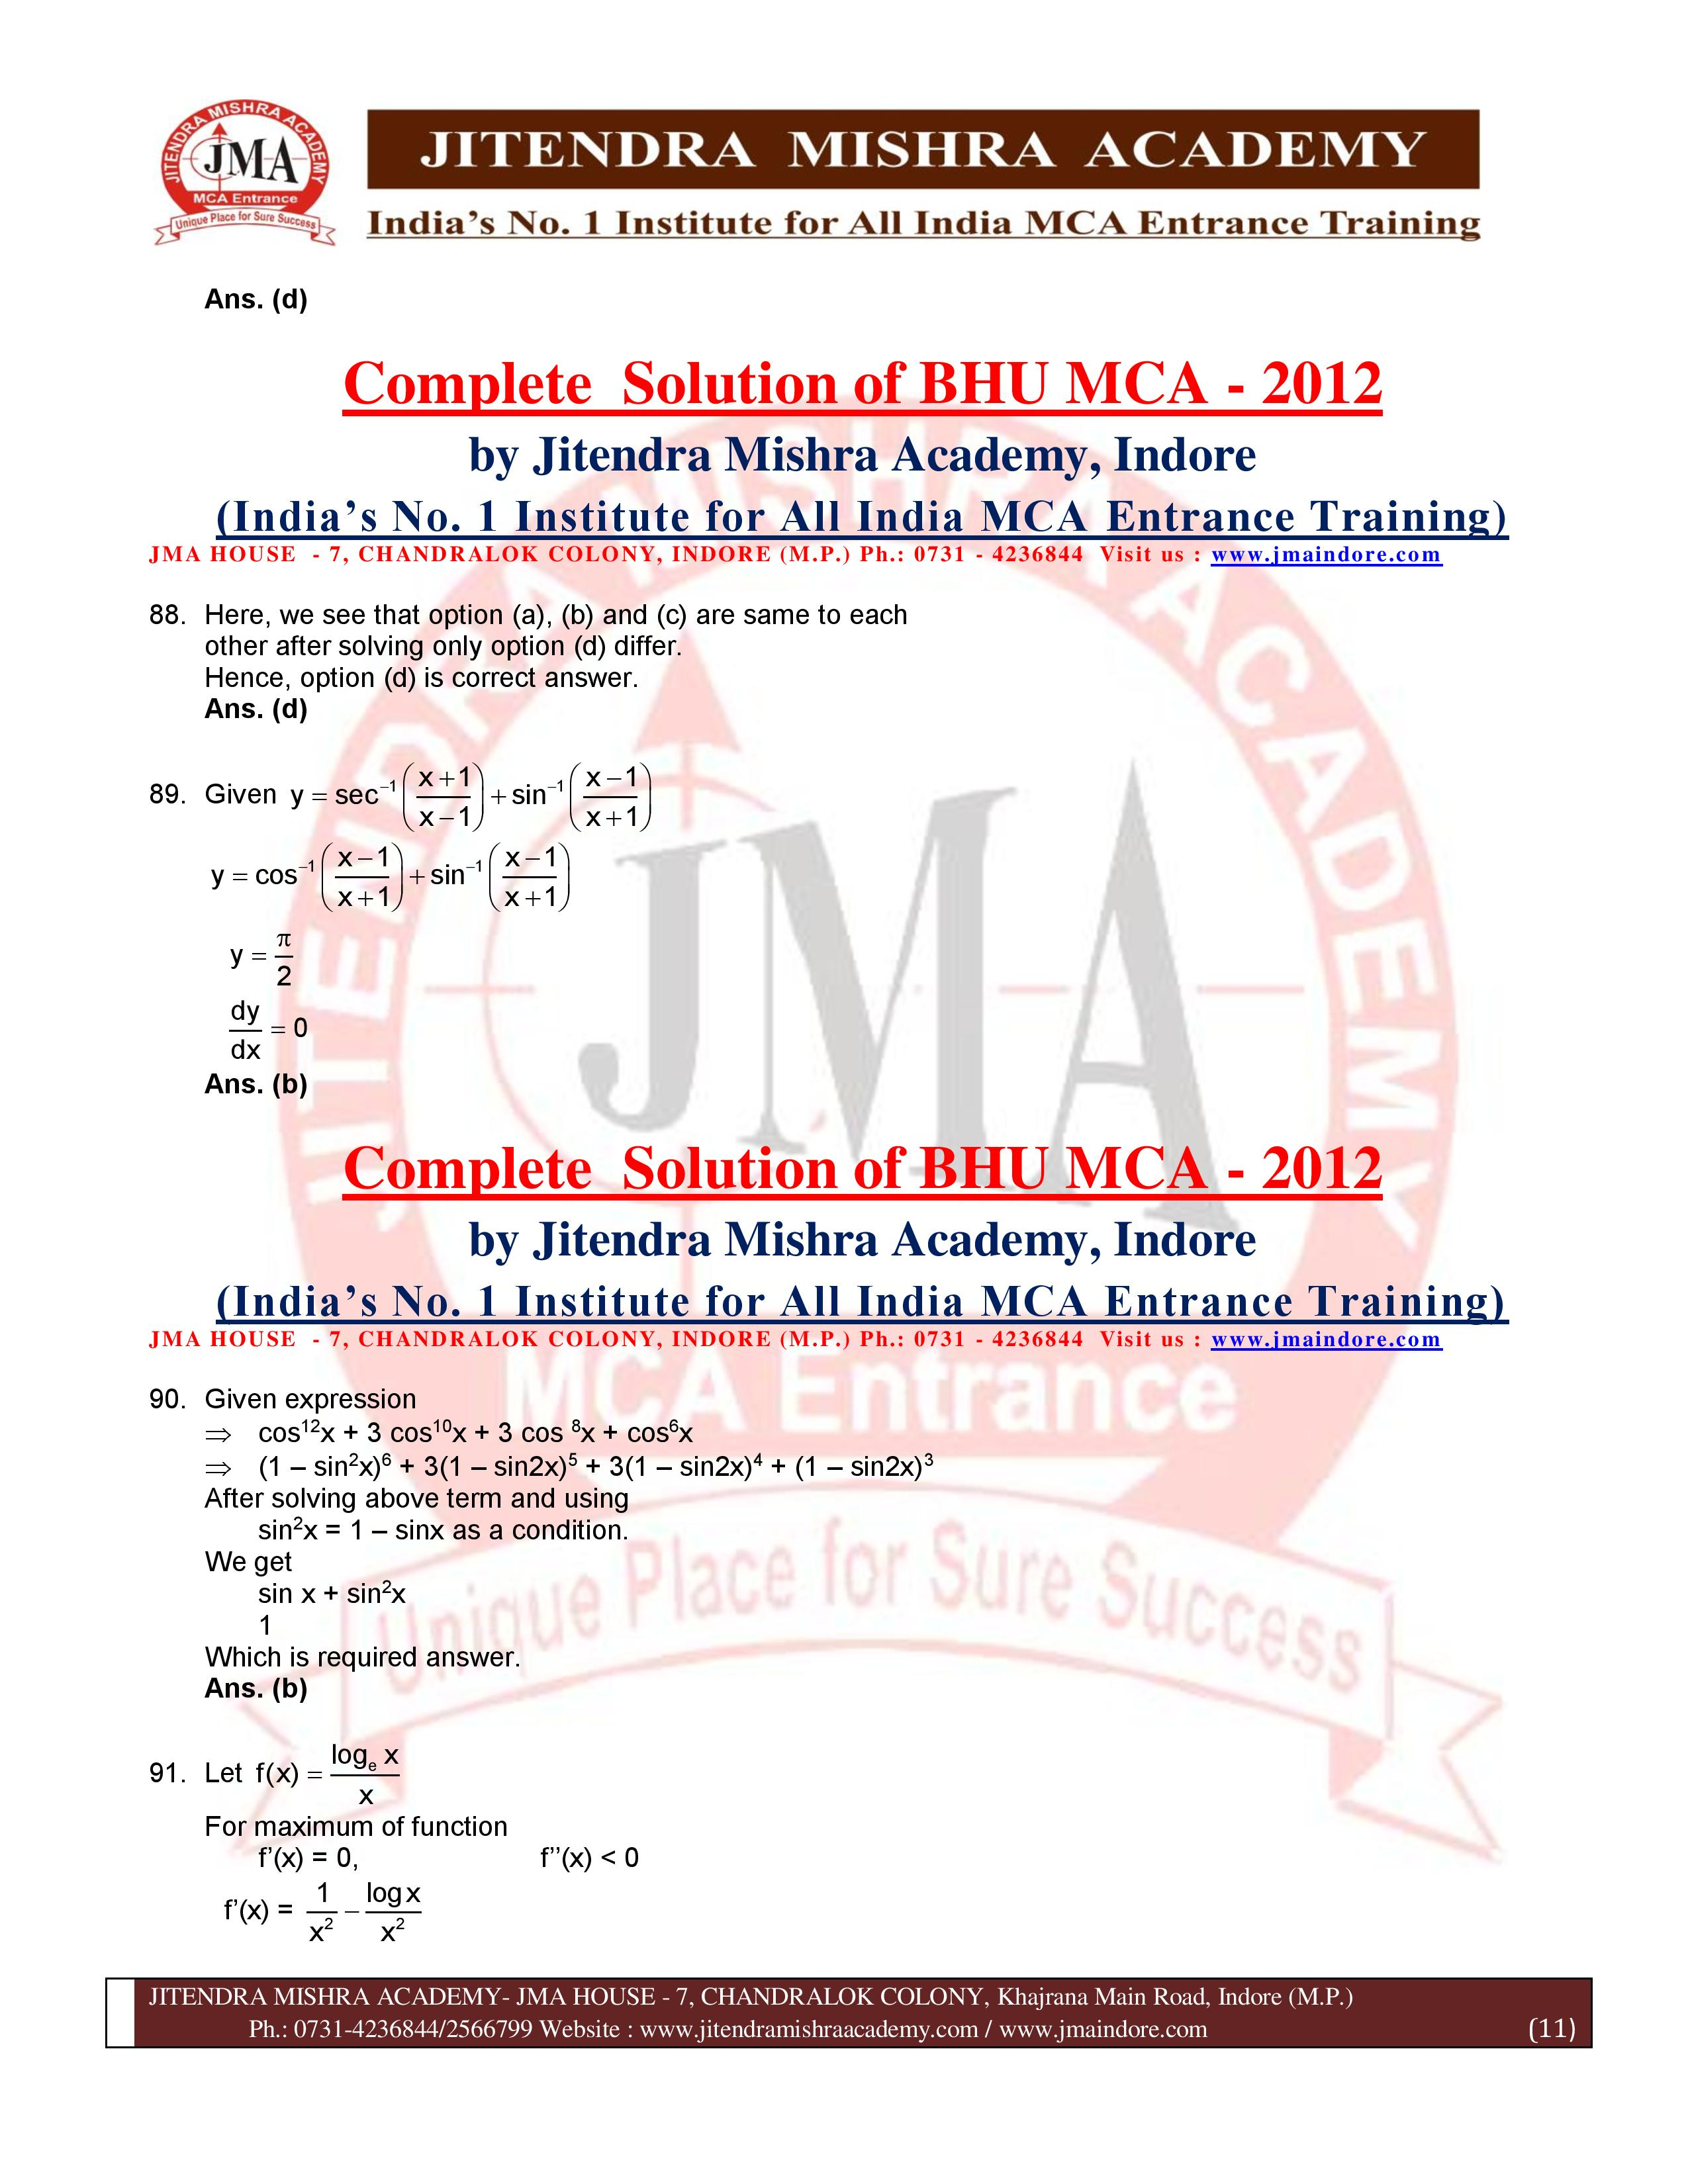 BHU 2012 SOLUTION (SET - 2) (07.07.16)-page-011